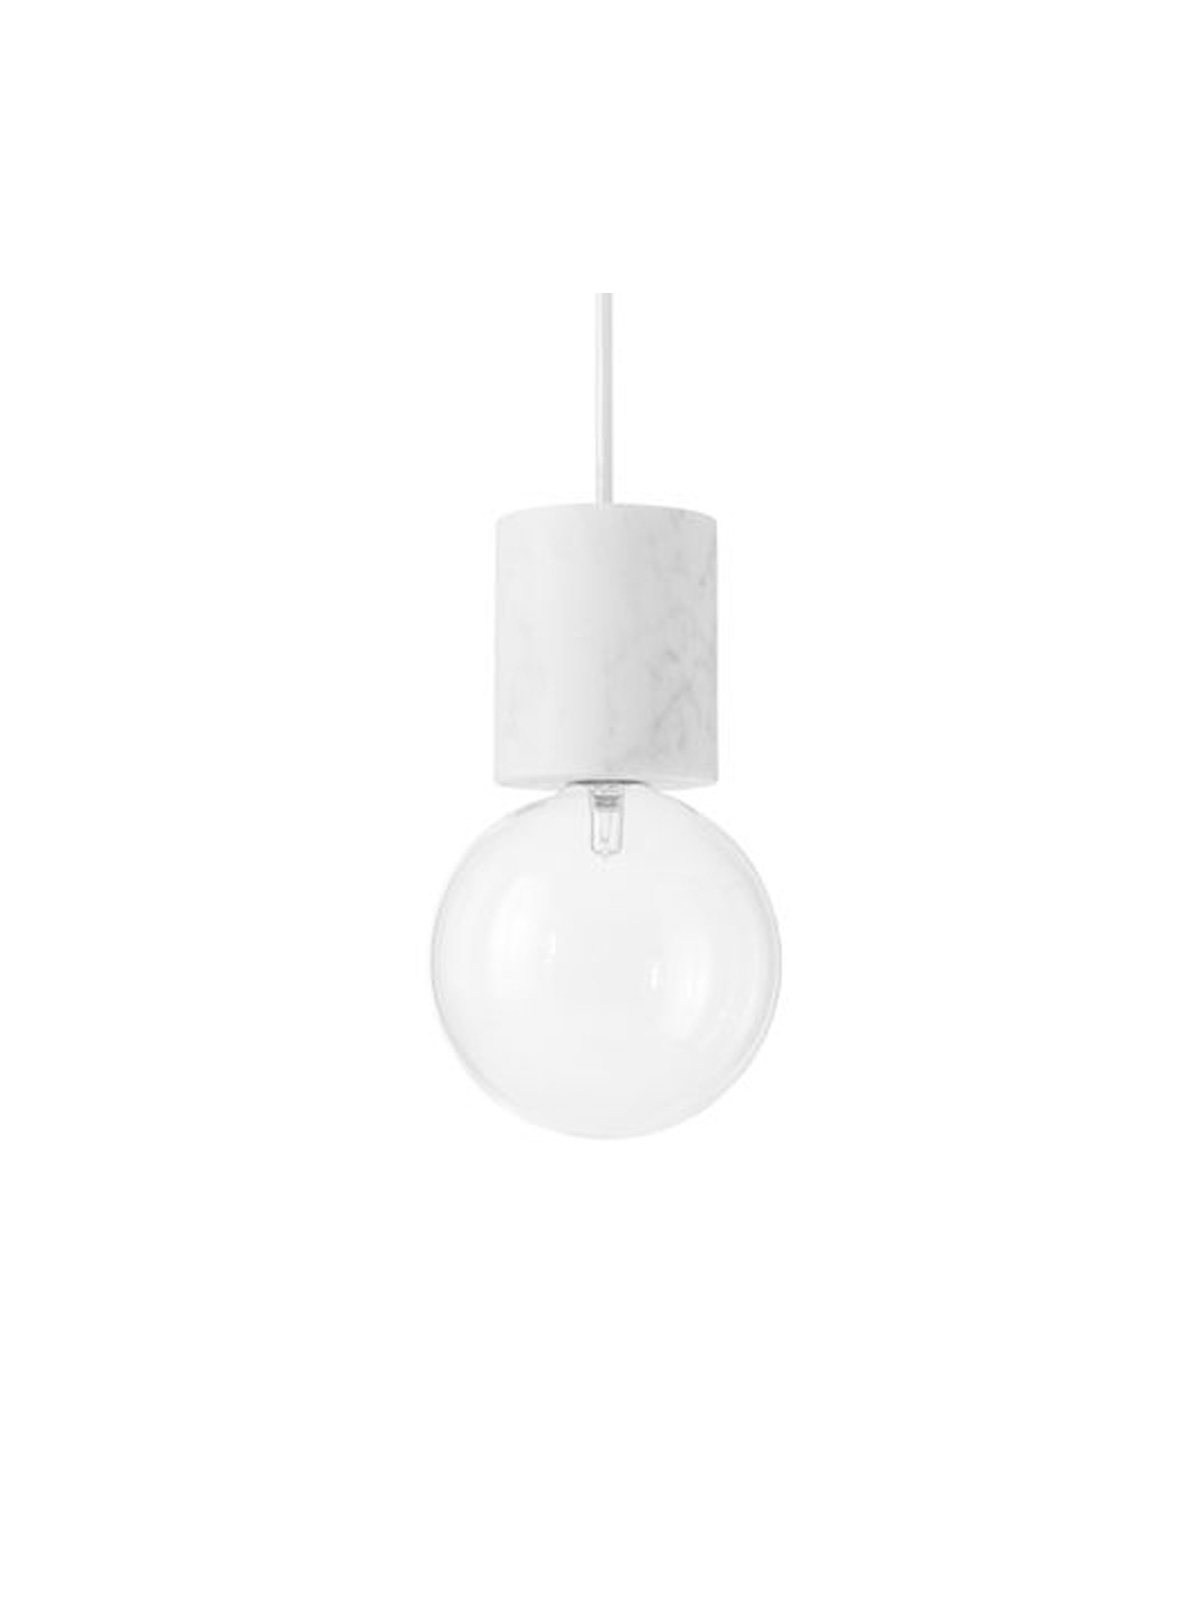 Bandtradition Marble Light Pendelleuchte DesignOrt Berlin